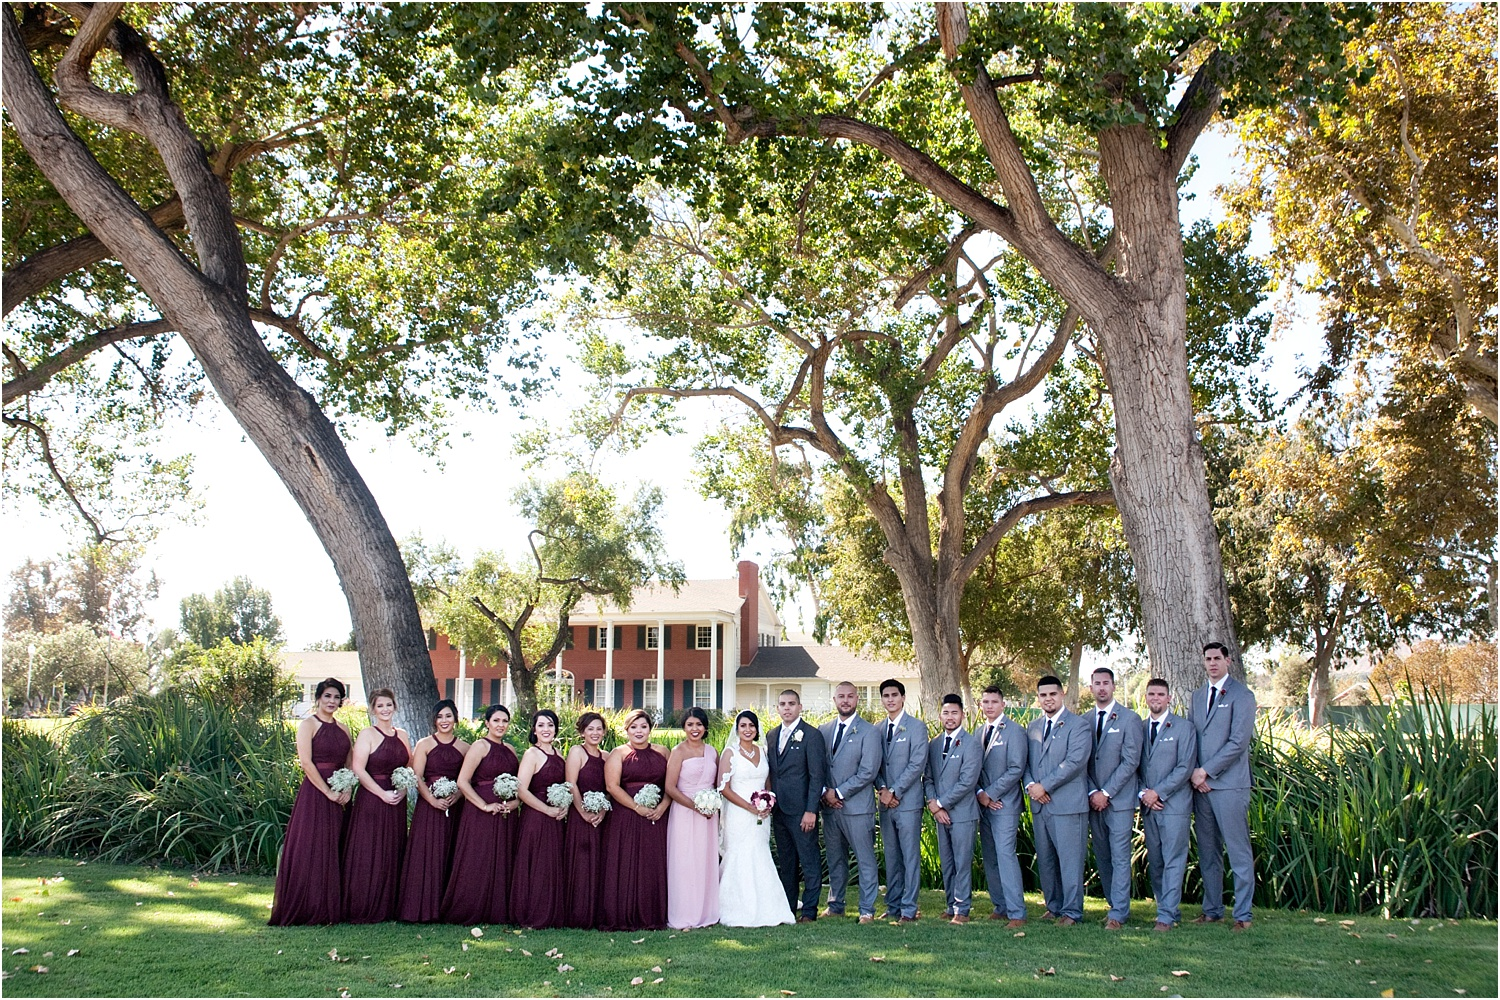 How to photograph family and bridal party portraits quickly at weddings 12